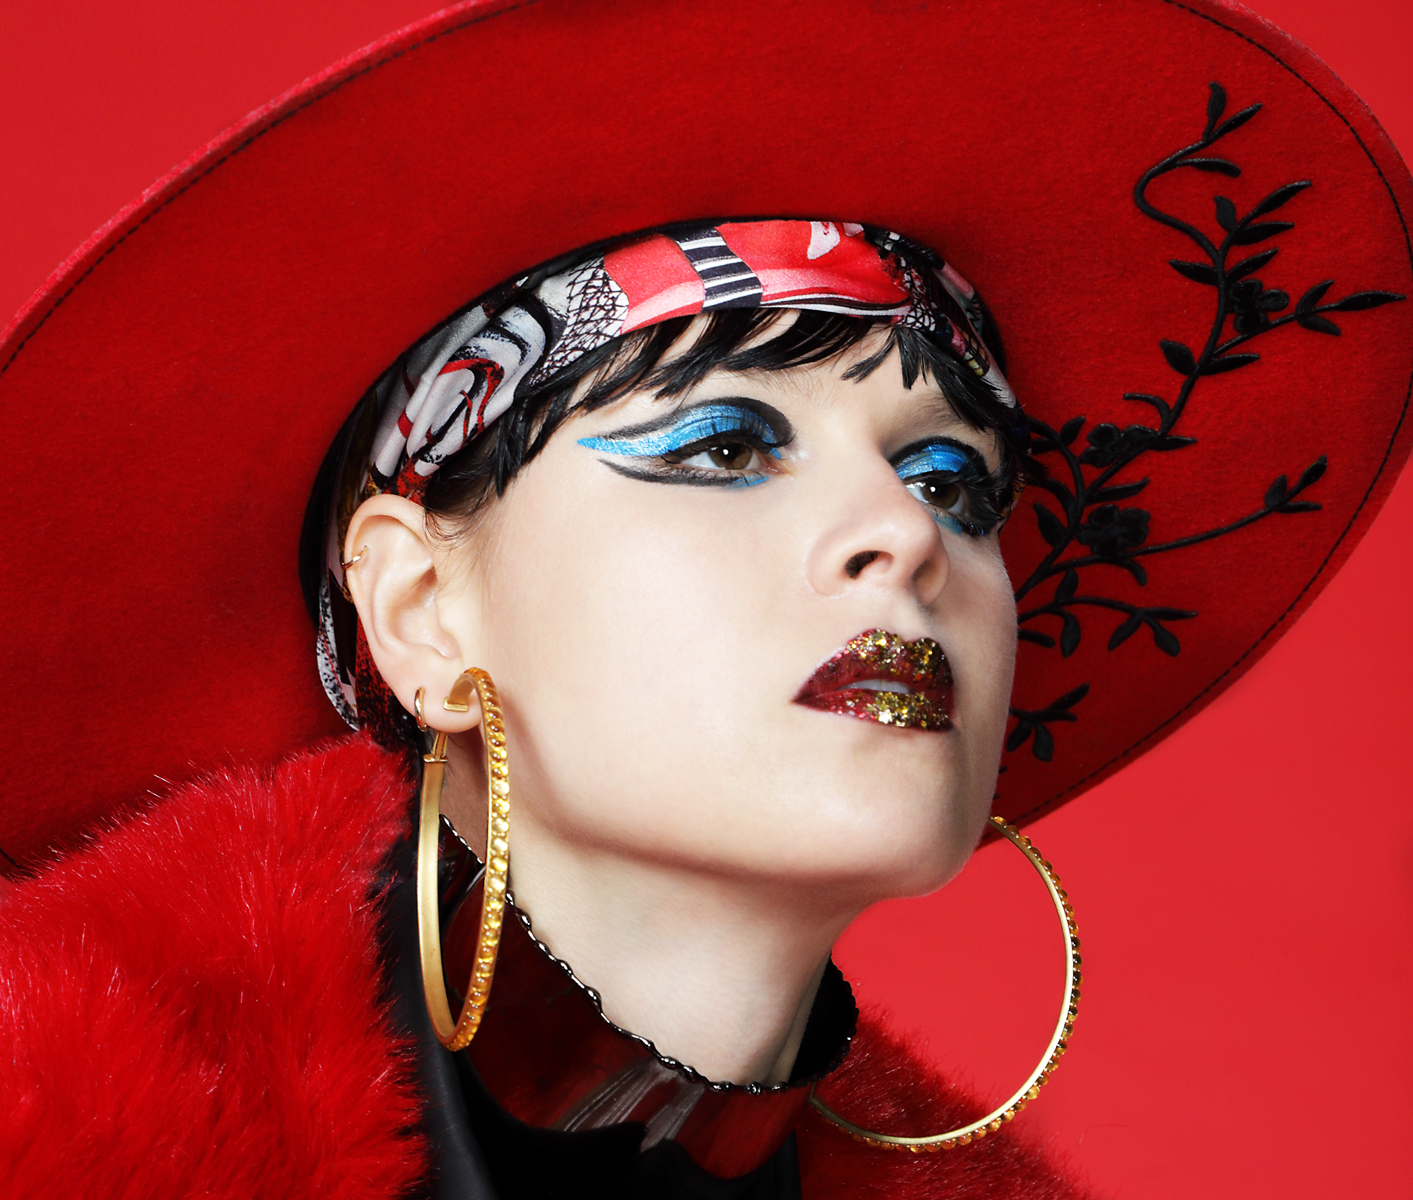 Hat by  GLAMROCKS , Scarf by  VALENTINA AVRAMIDES at Flying Solo,  Earrings by  Adore Adorn at Dreems NYC,  Choker by  GBGH JEWELRY at Flying Solo,  Jacket by  NARCISS by Alise Trautmane at Dreems NYC